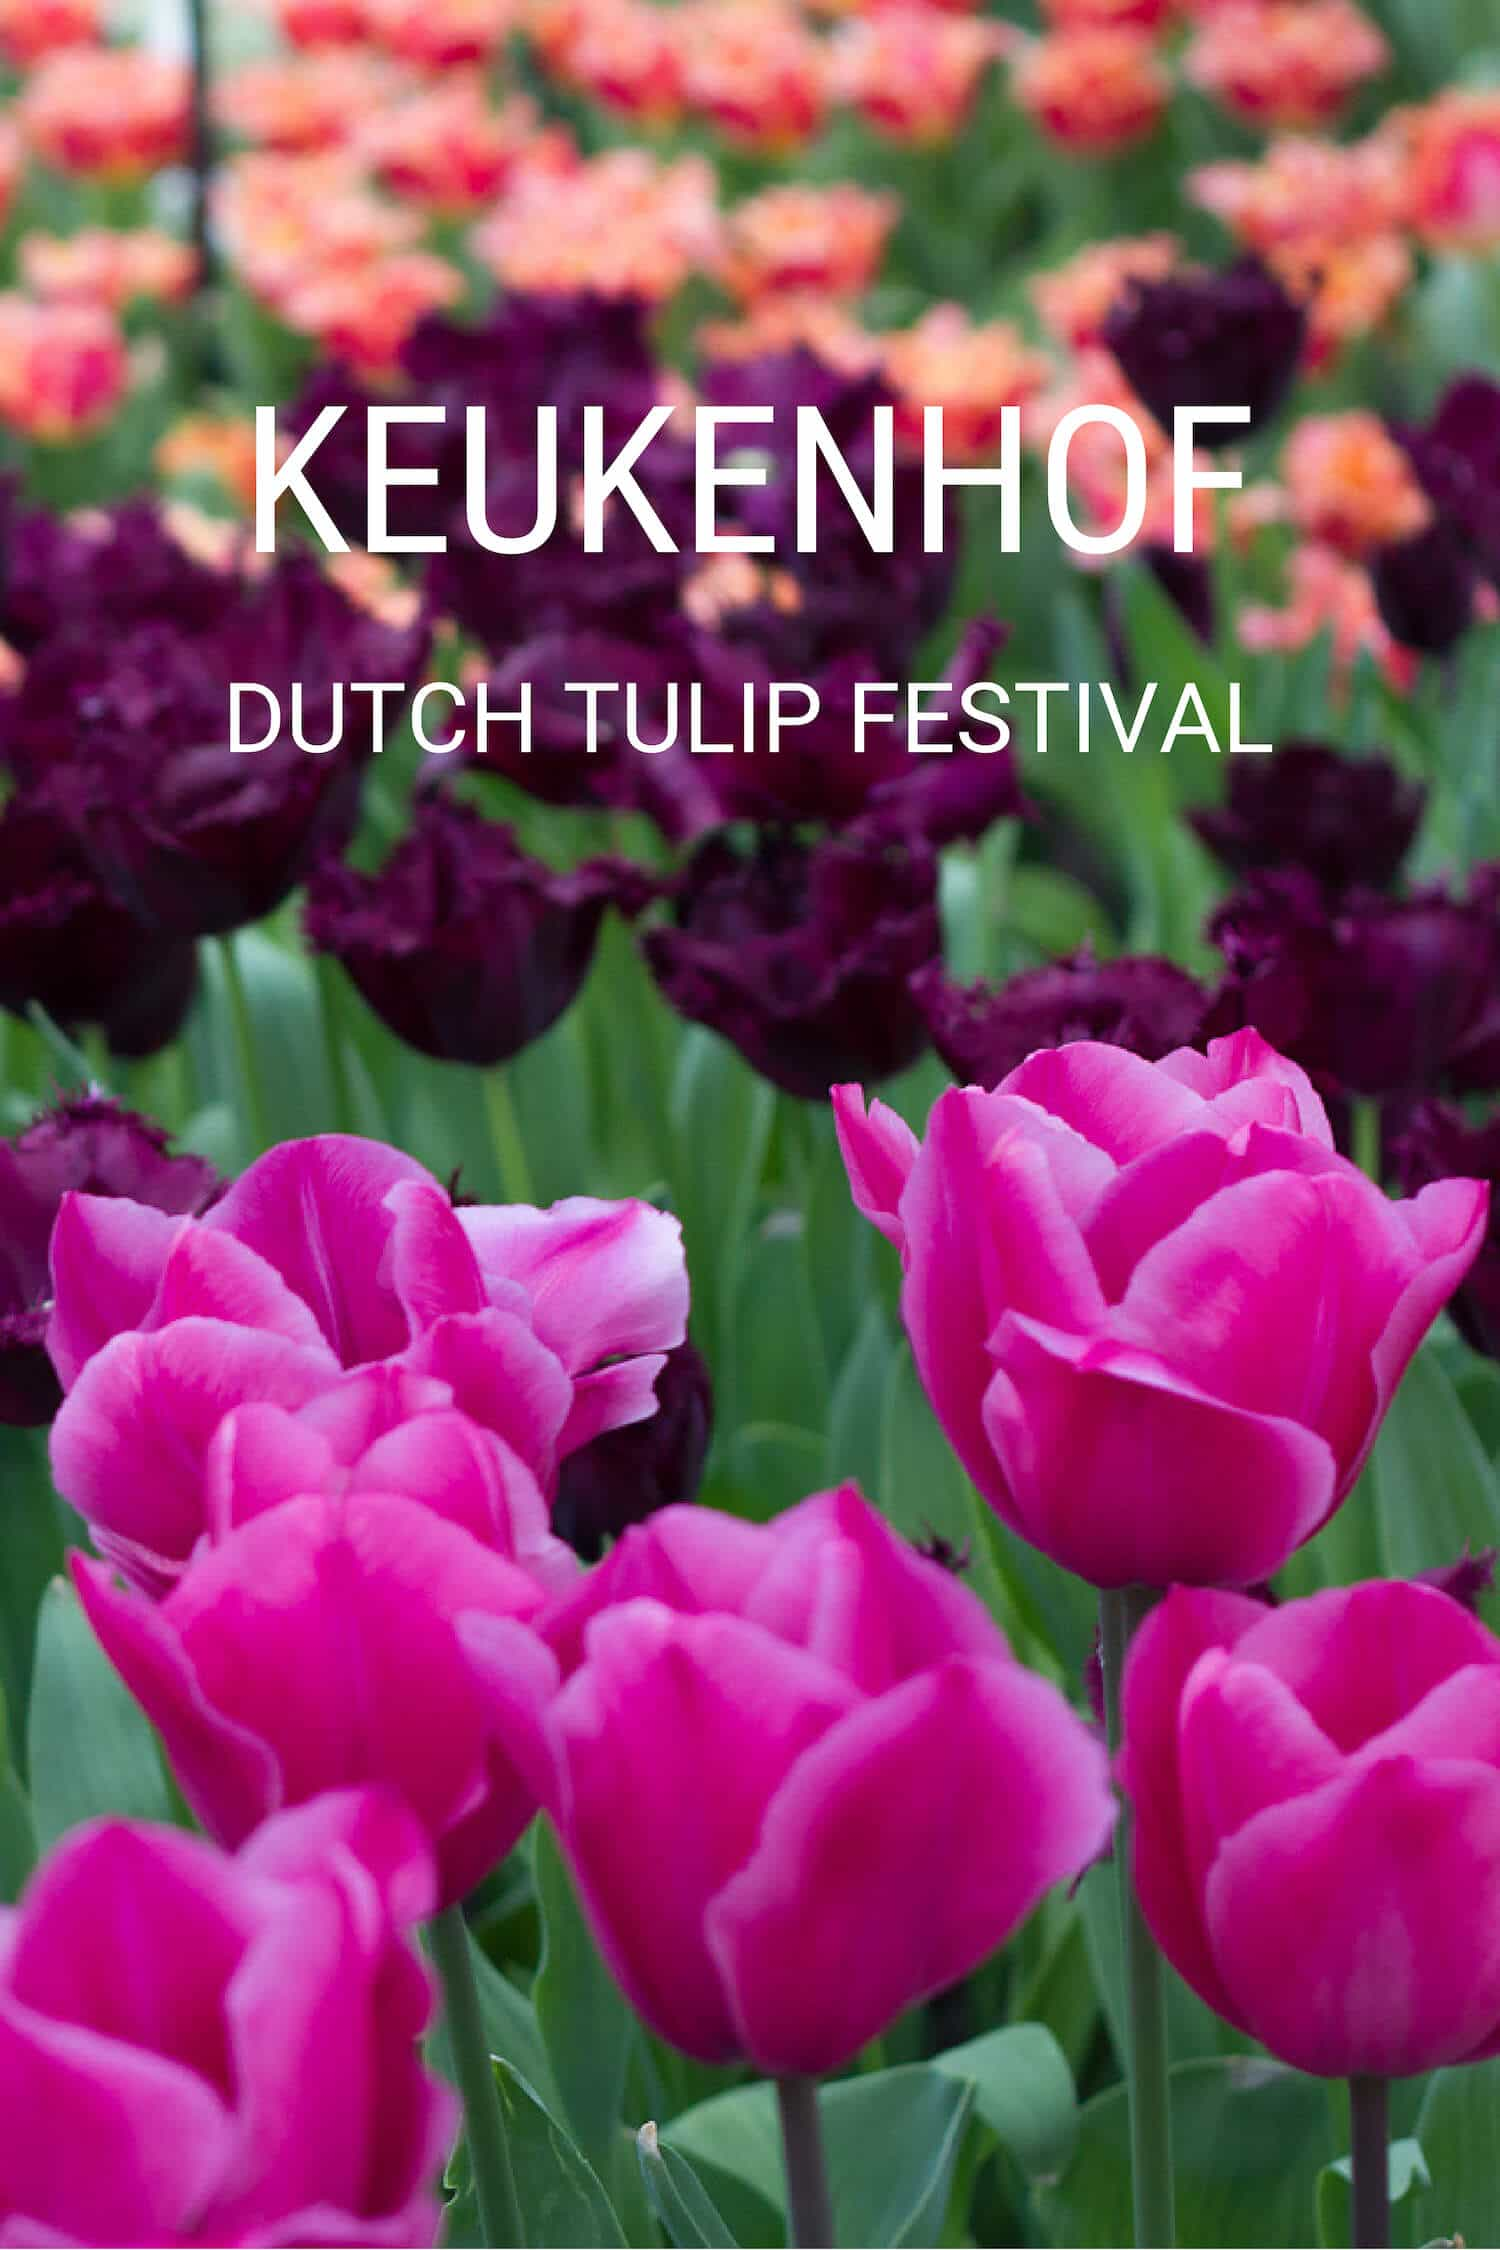 Keukenhof Dutch Tulip Festival Guide